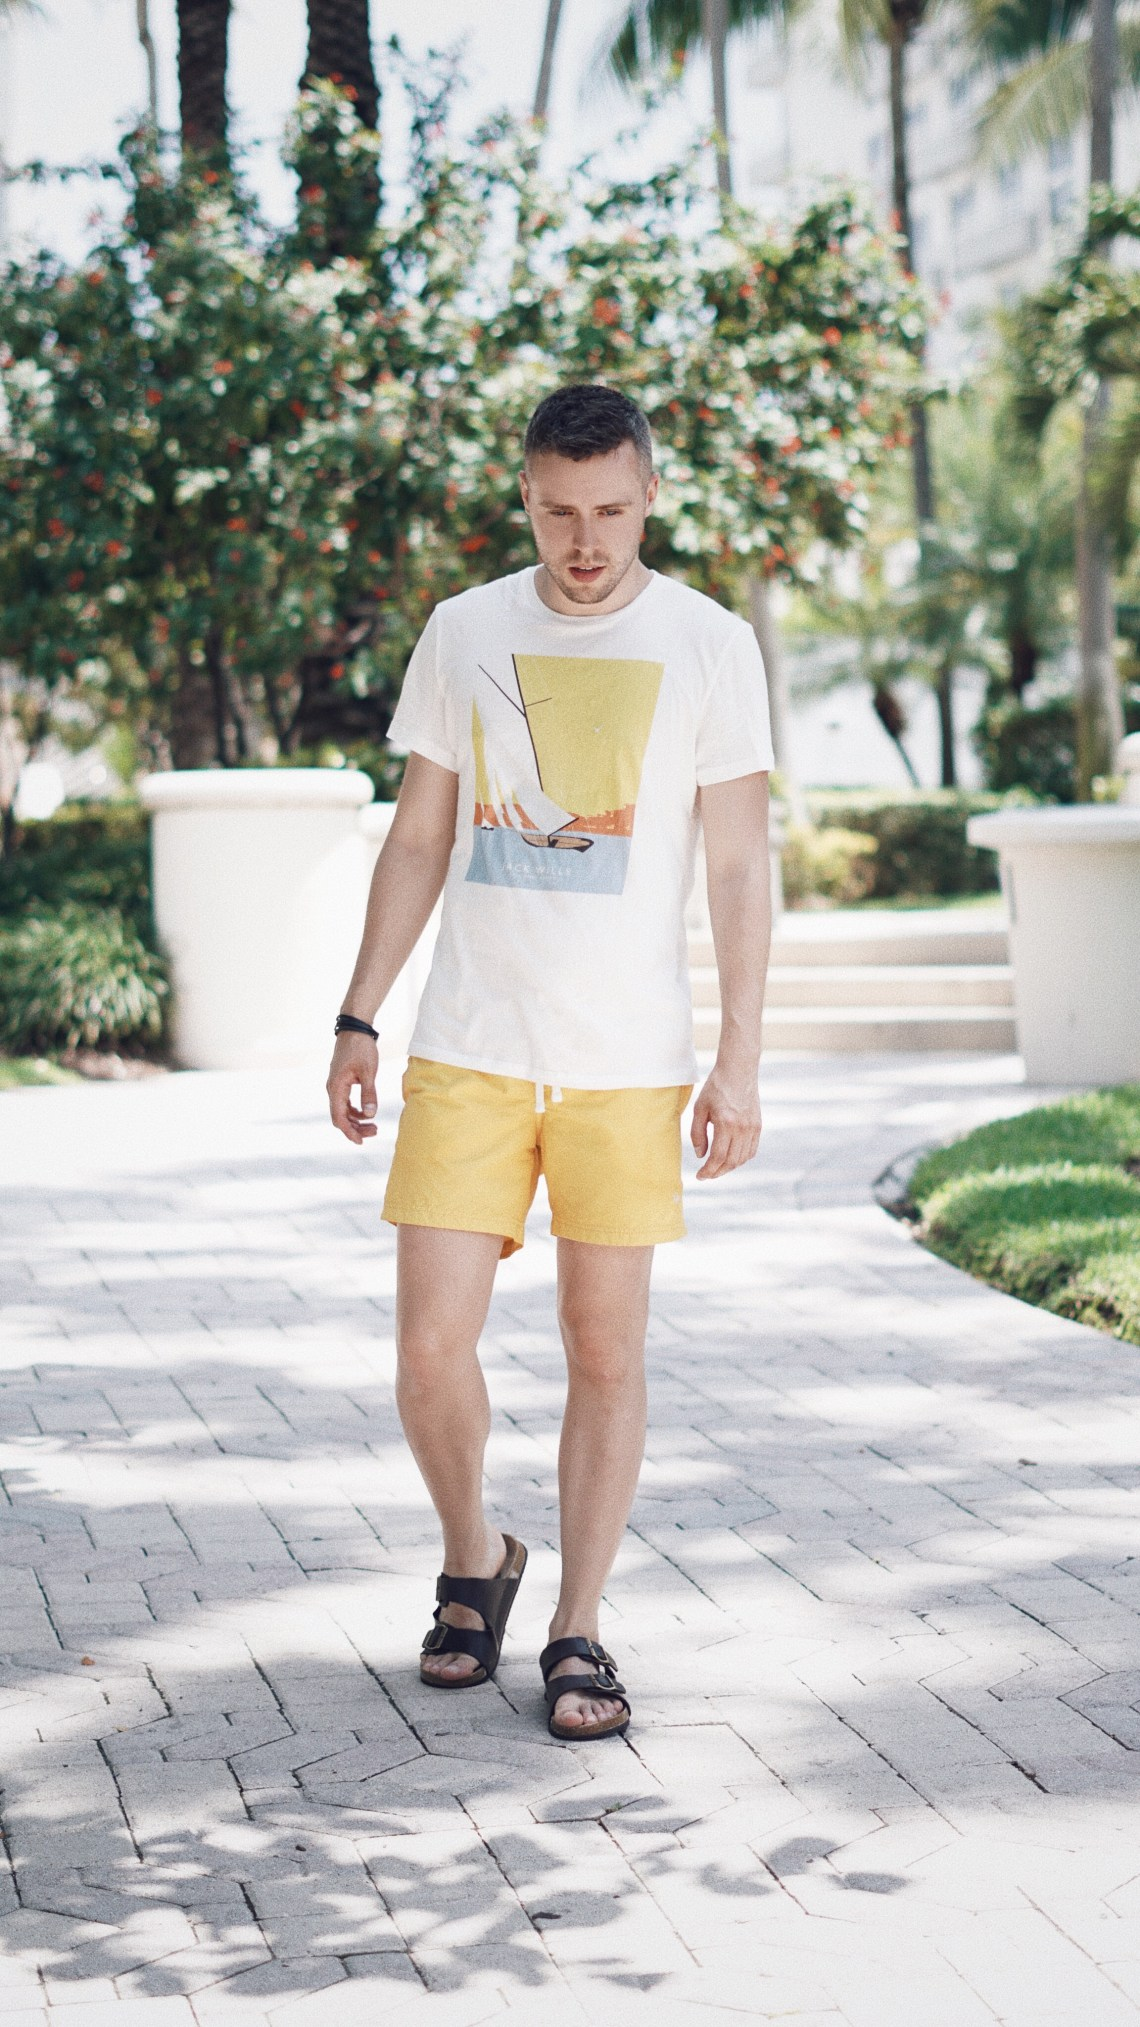 Yellow Mellow. Wearing Branwell Swim Trunks and Wentworth Summer T-shirt from Jack Wills, Classic Kånken Backpack from Fjällräven and Black Buckle Slip Ons from Primark. Shot outside Loews Hotel in South Beach, Miami. Blog by Skirmantas Petraitis